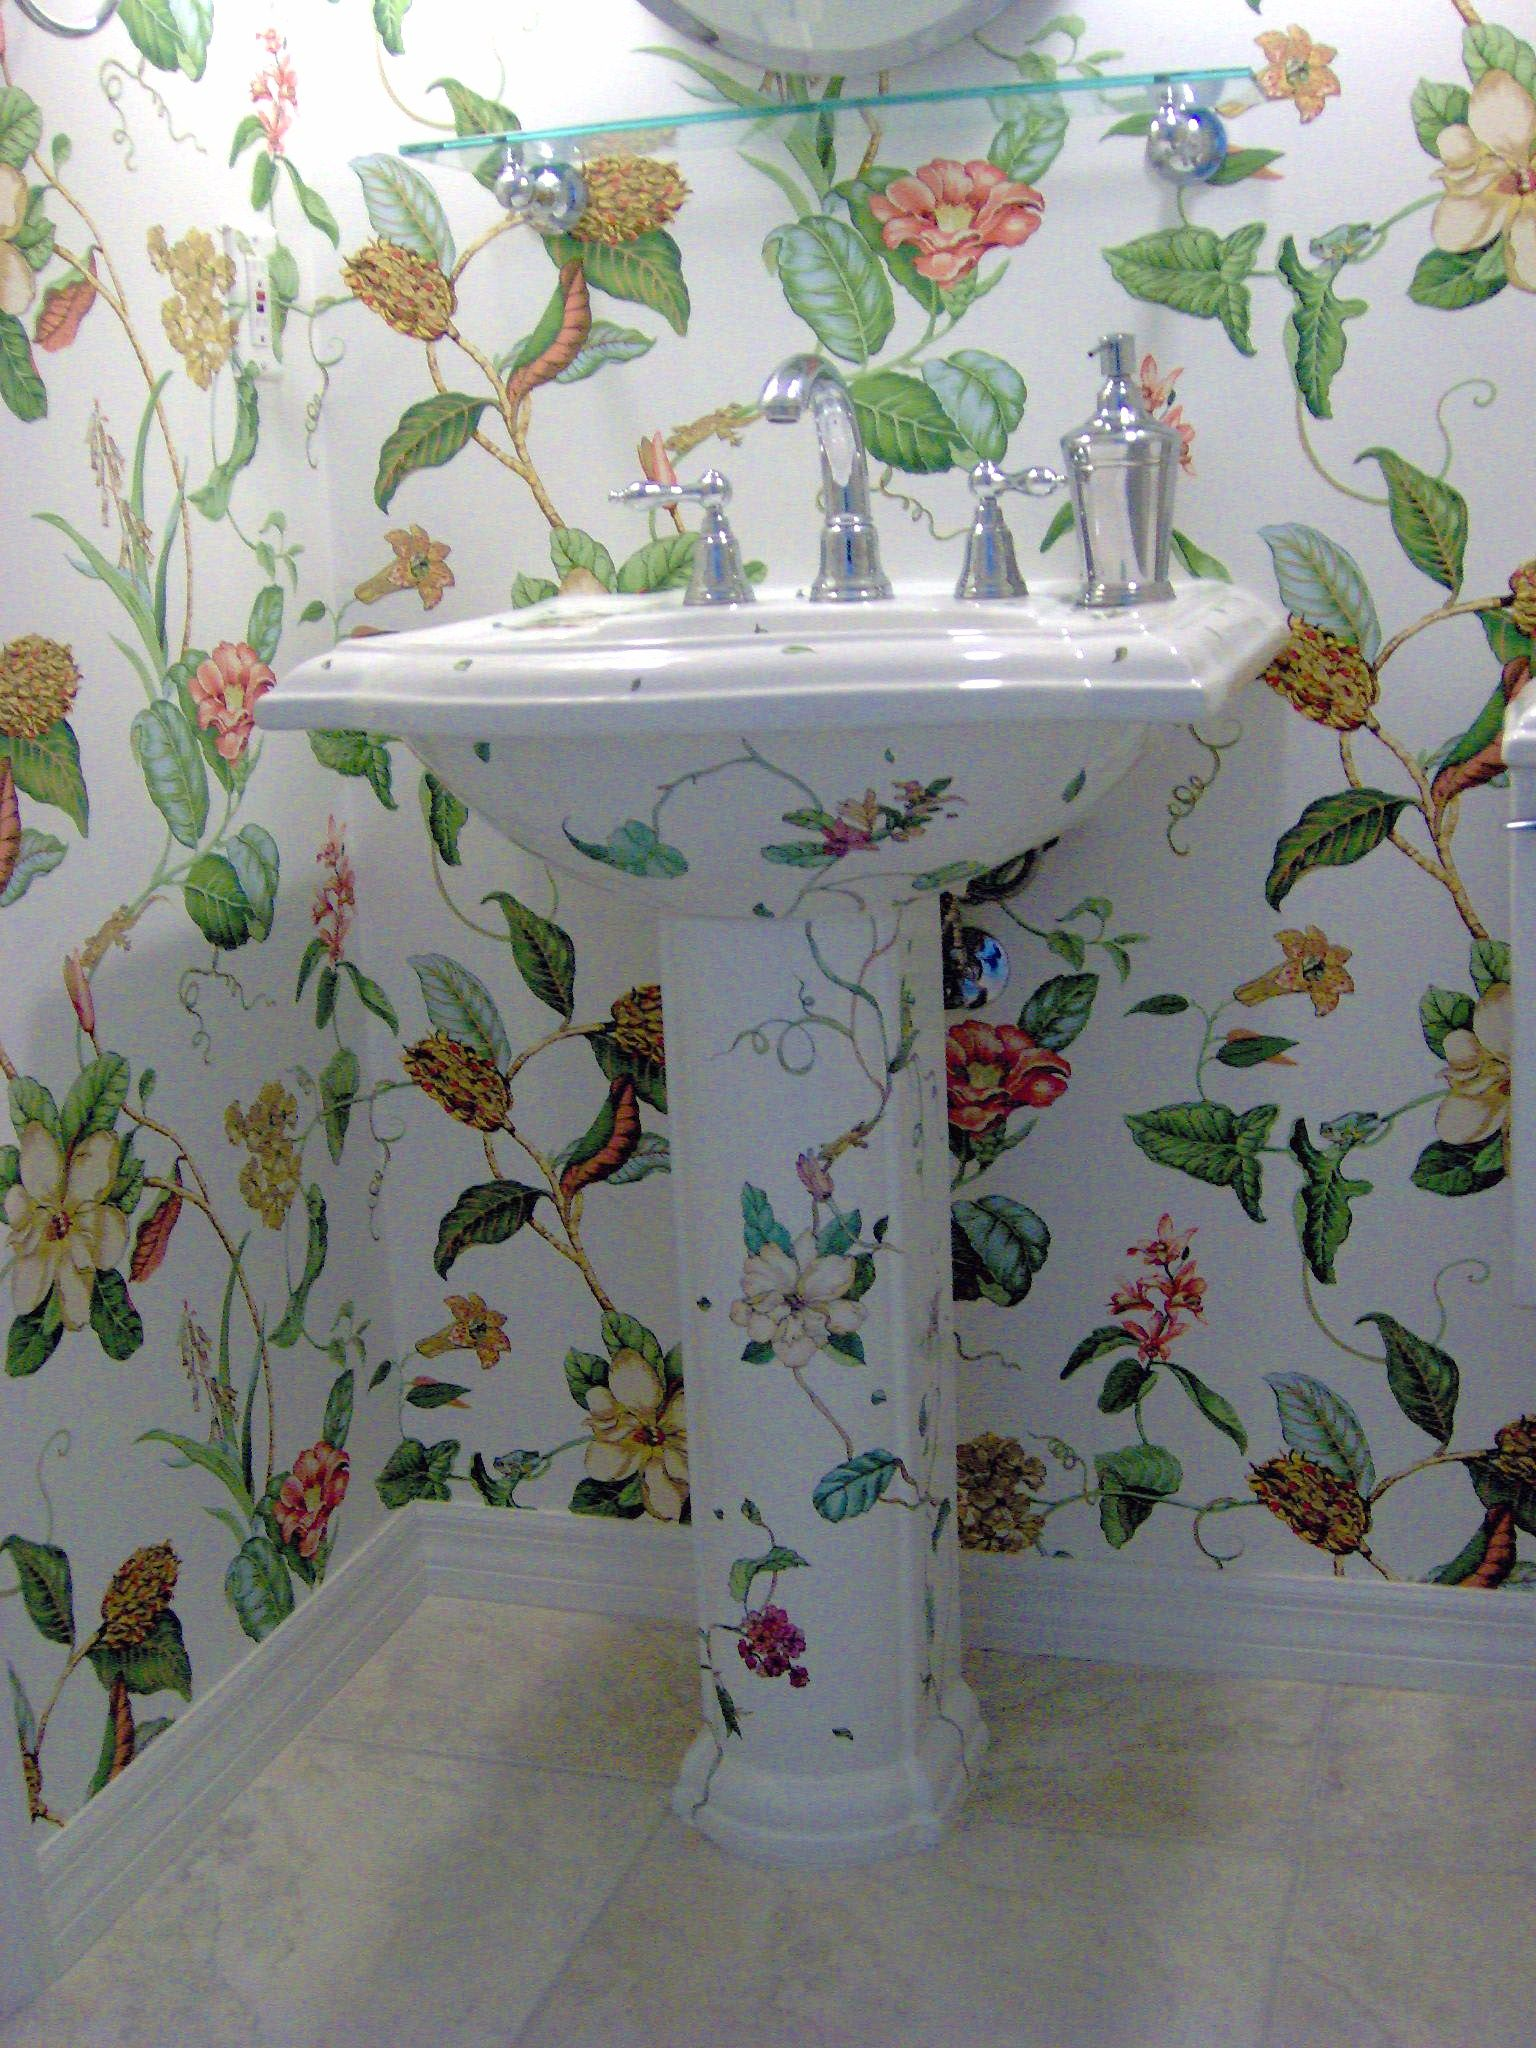 Pedestal Sink Designed And Hand Painted To Coordinate The Wallpaper.